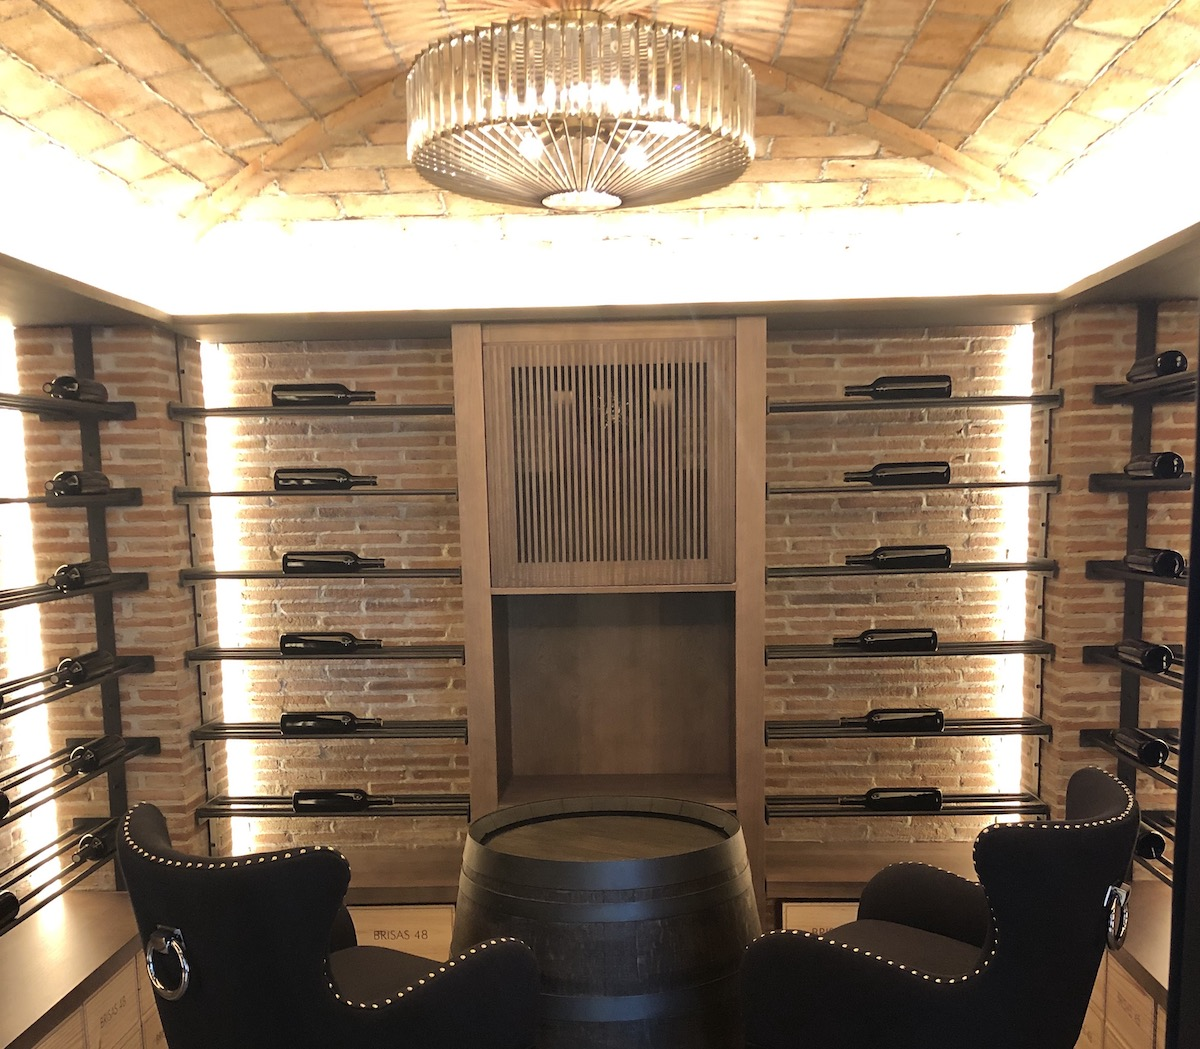 Wine cellar - BTR News